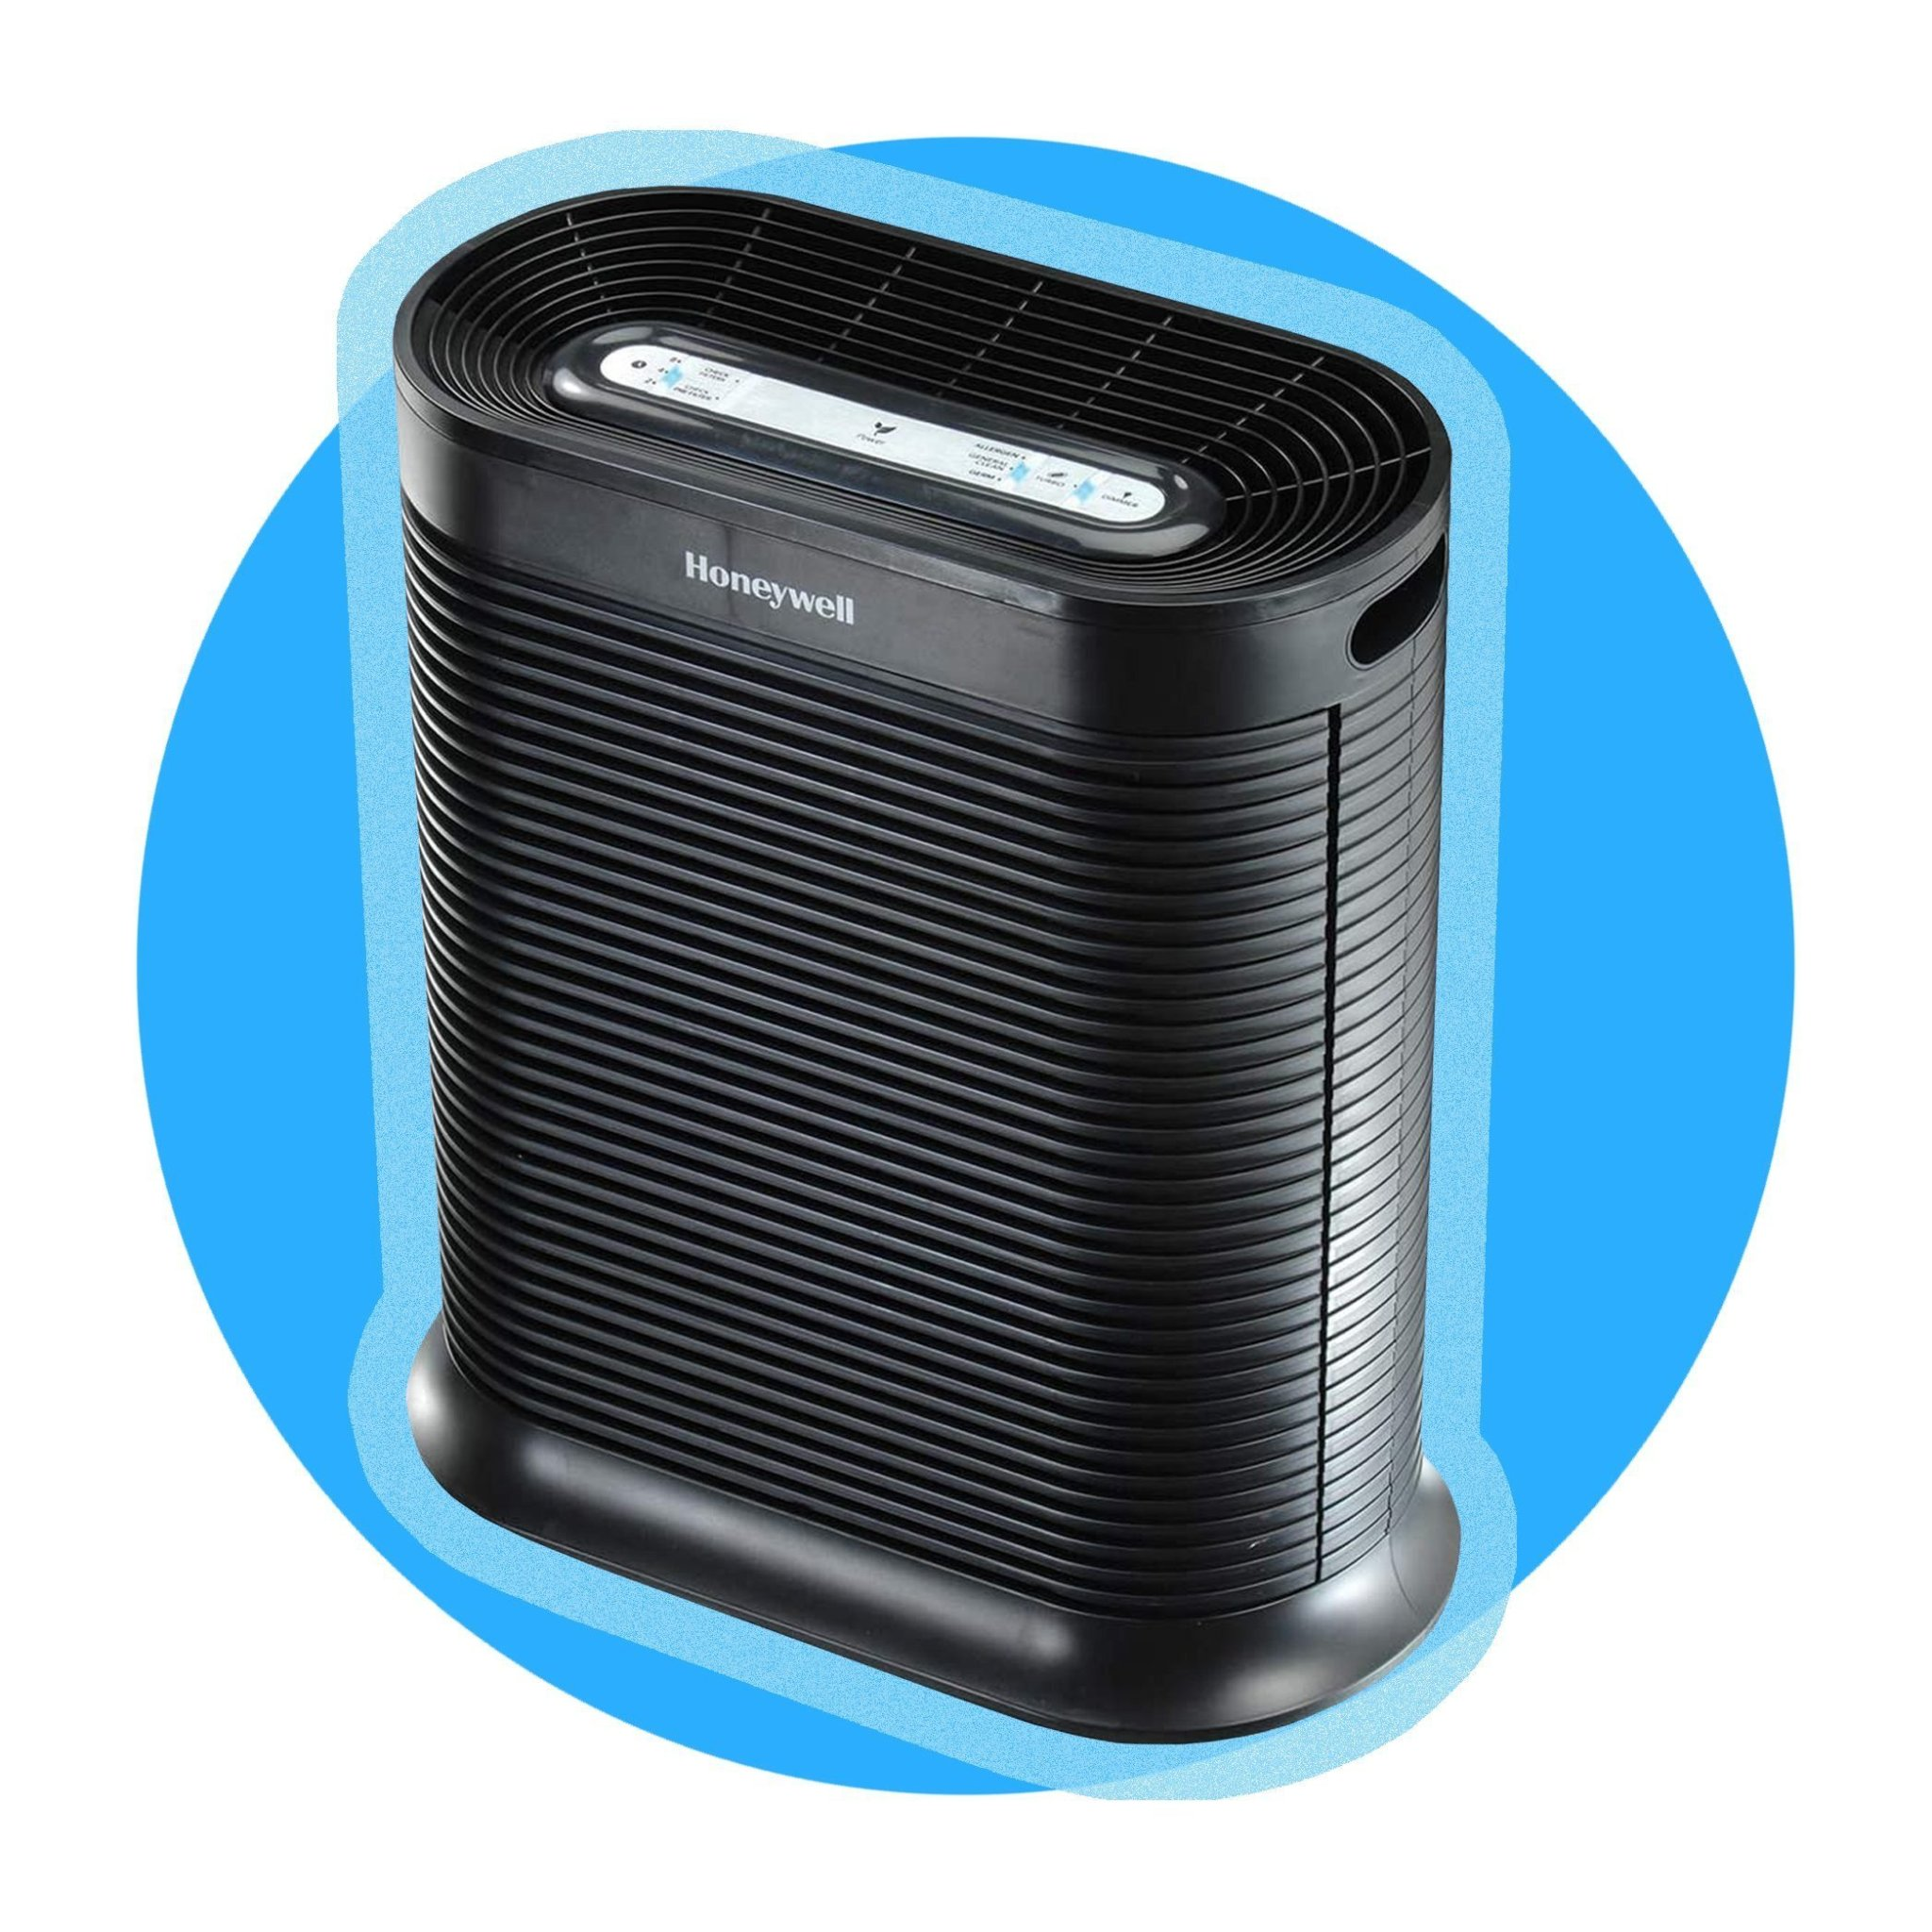 Why Amazon Reviewers Love this HEPA Air Purifier